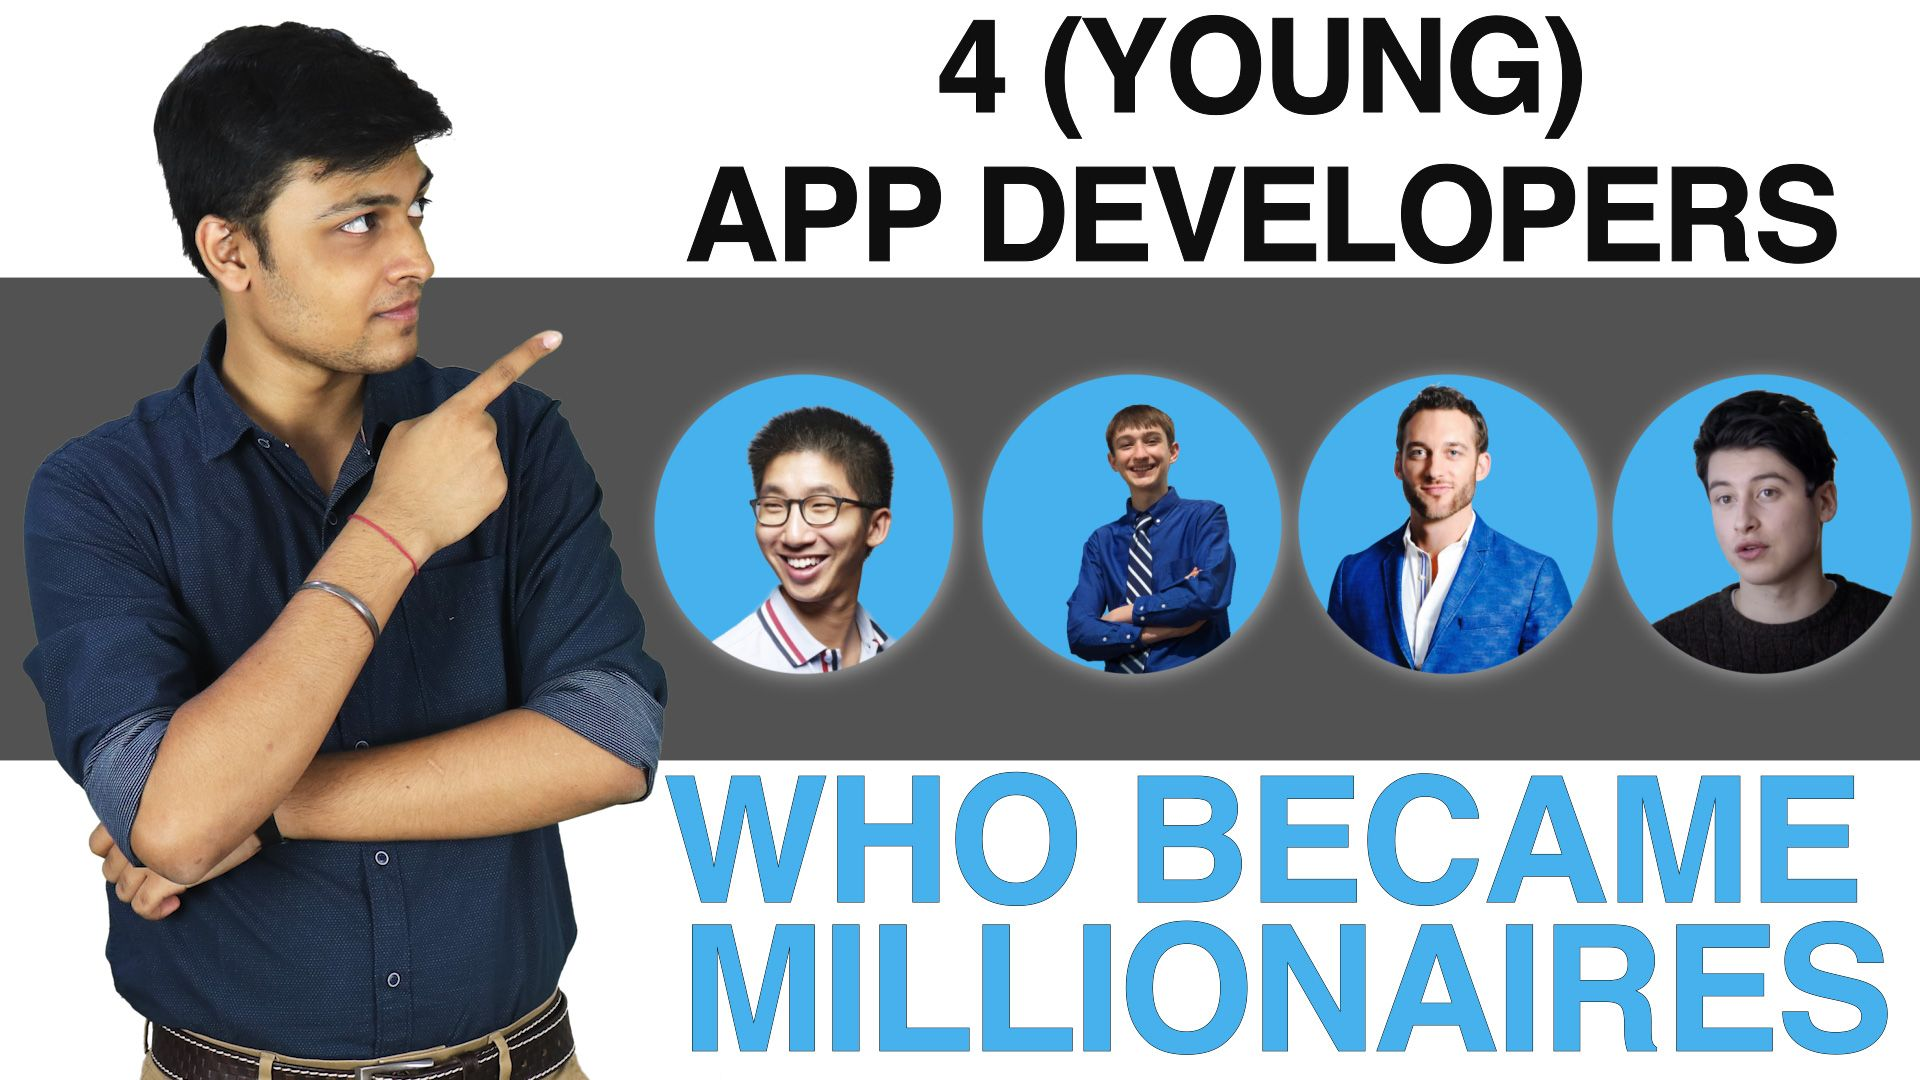 At an age where most millennials are hooked to mobile apps